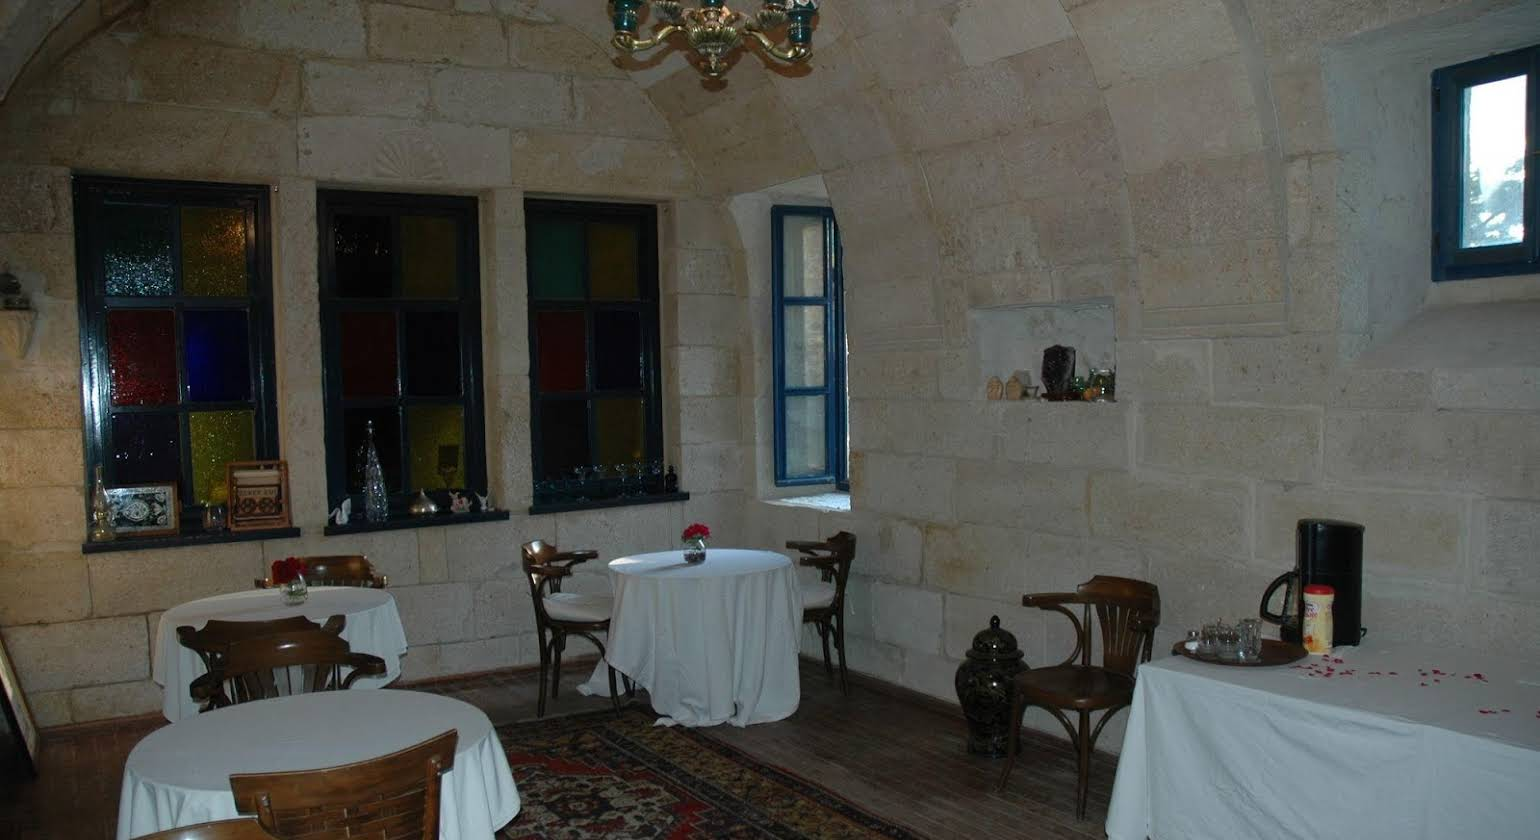 Elkep Evi Cave Hotel